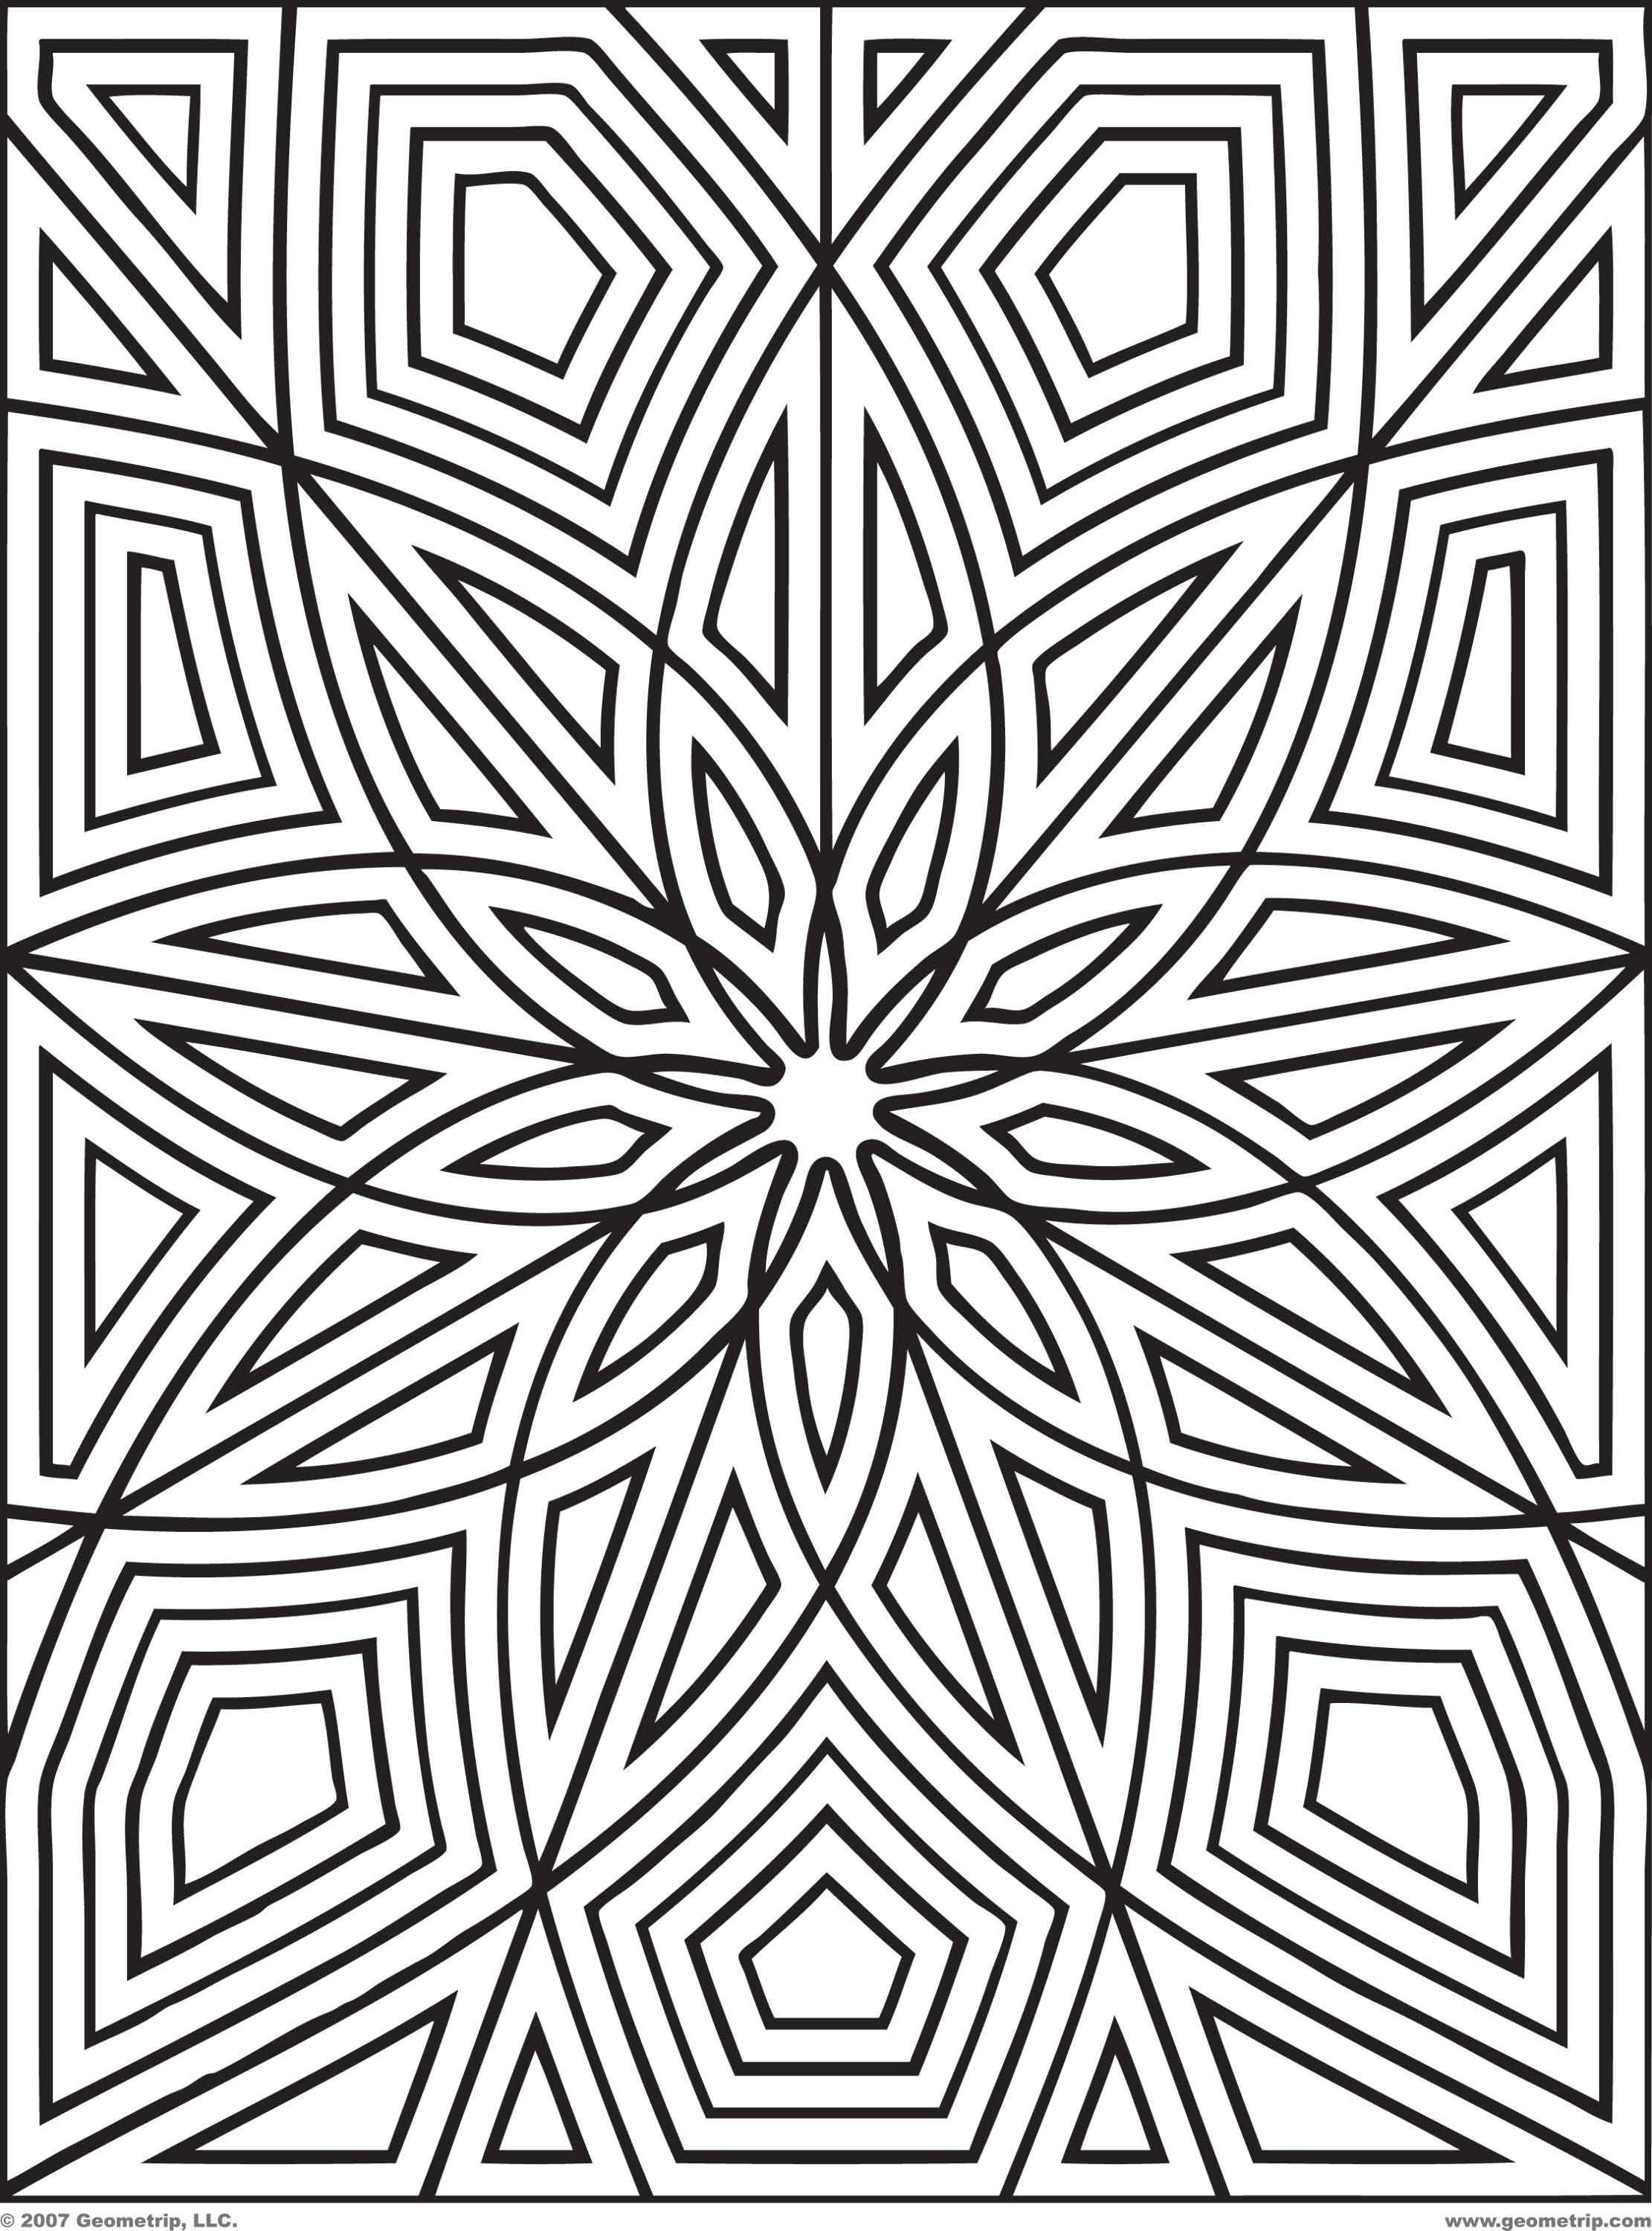 Geometrip Com Free Geometric Coloring Designs Rectangles Geometric Coloring Pages Pattern Coloring Pages Mandala Coloring Pages